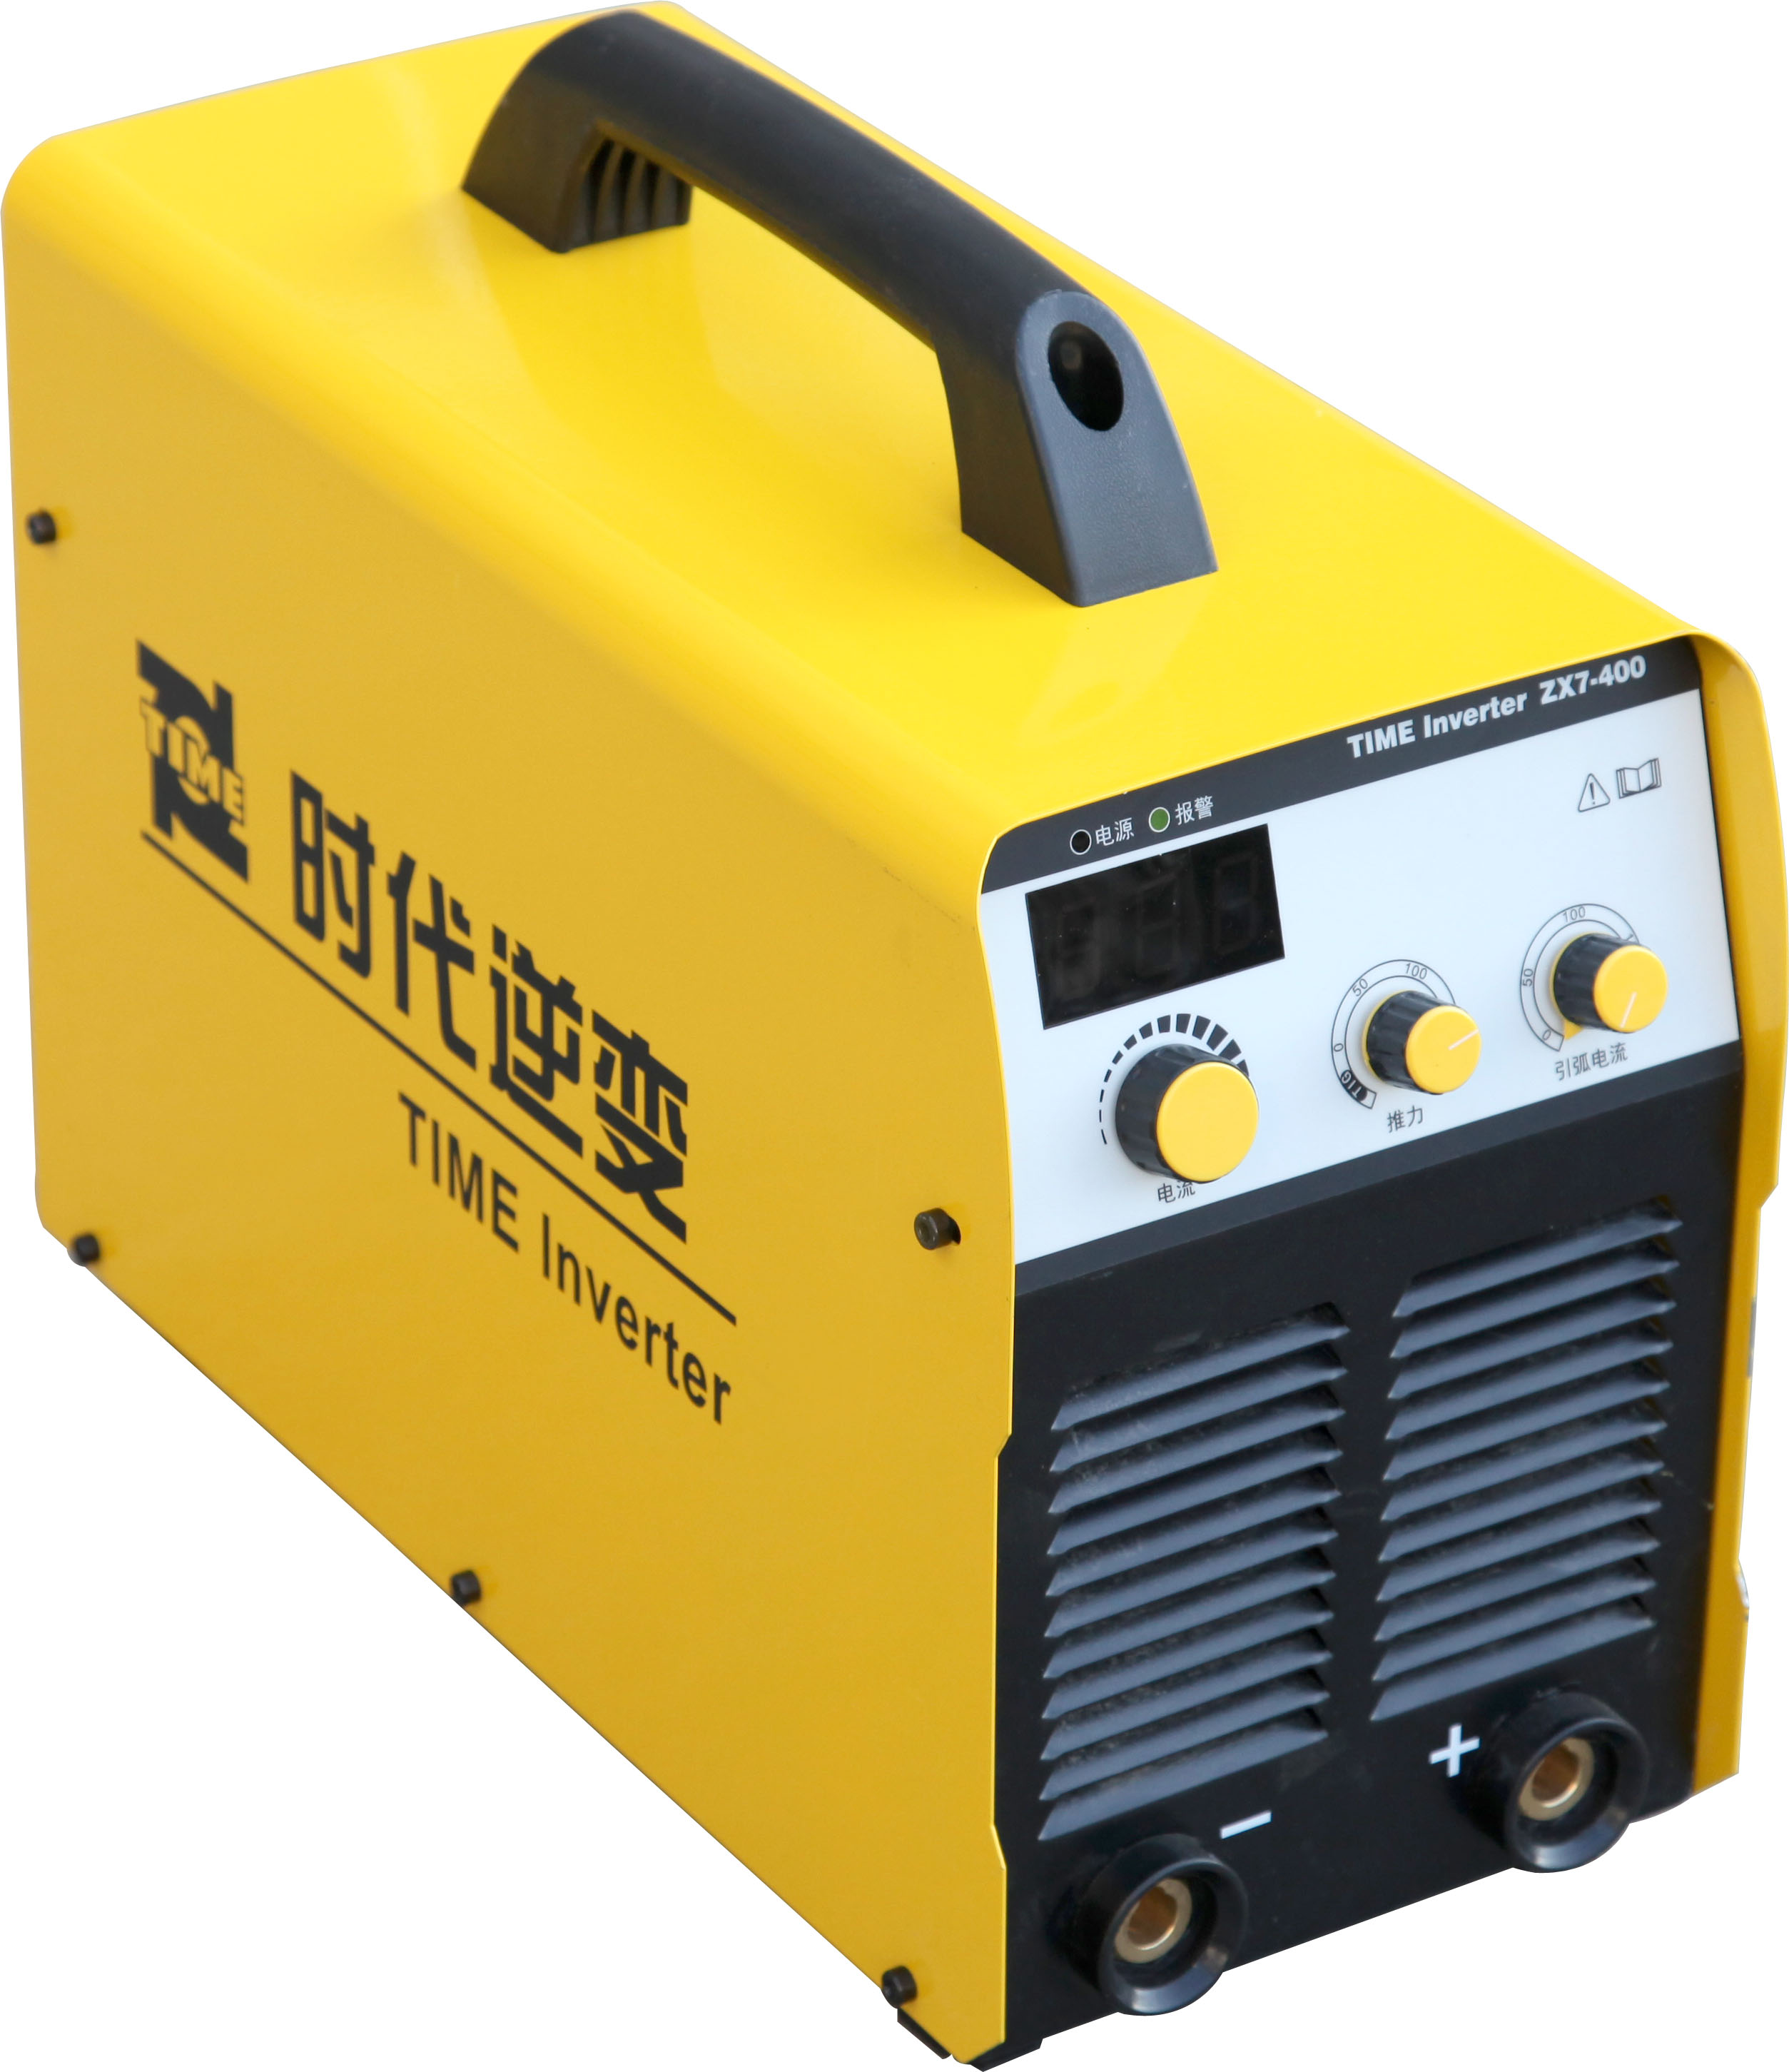 Portable Welding Machine Zx7 315 400 Mma Beijing Time Technologies Inverter Pcb Board Cutting Circuit Industry Coltd